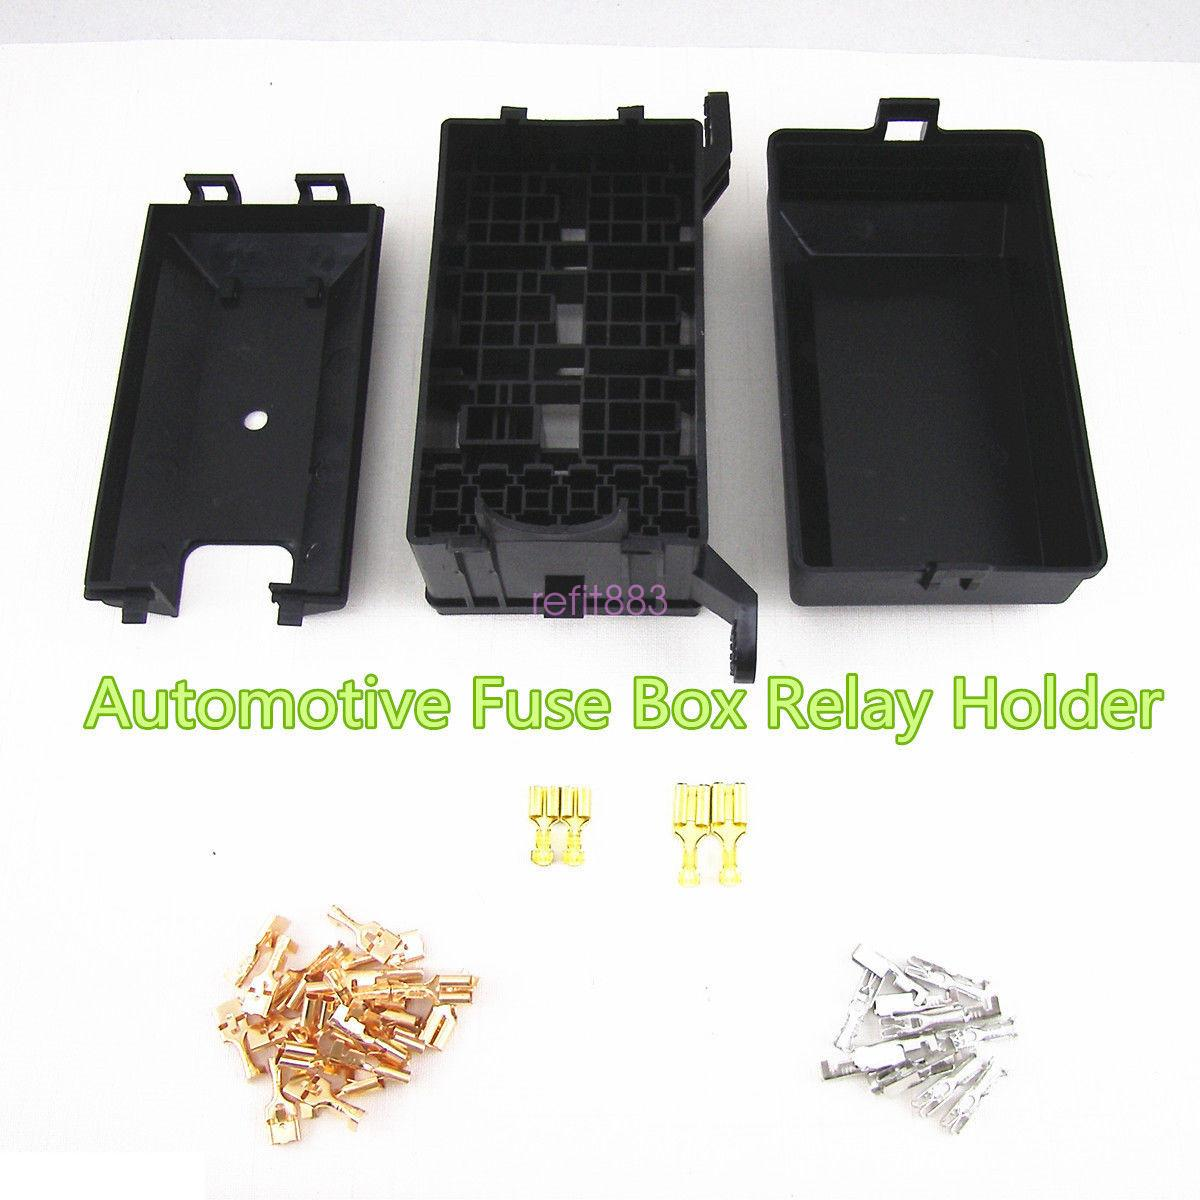 Fuse And Relay Box For Automotive : New black car vehicles relay road box fuse